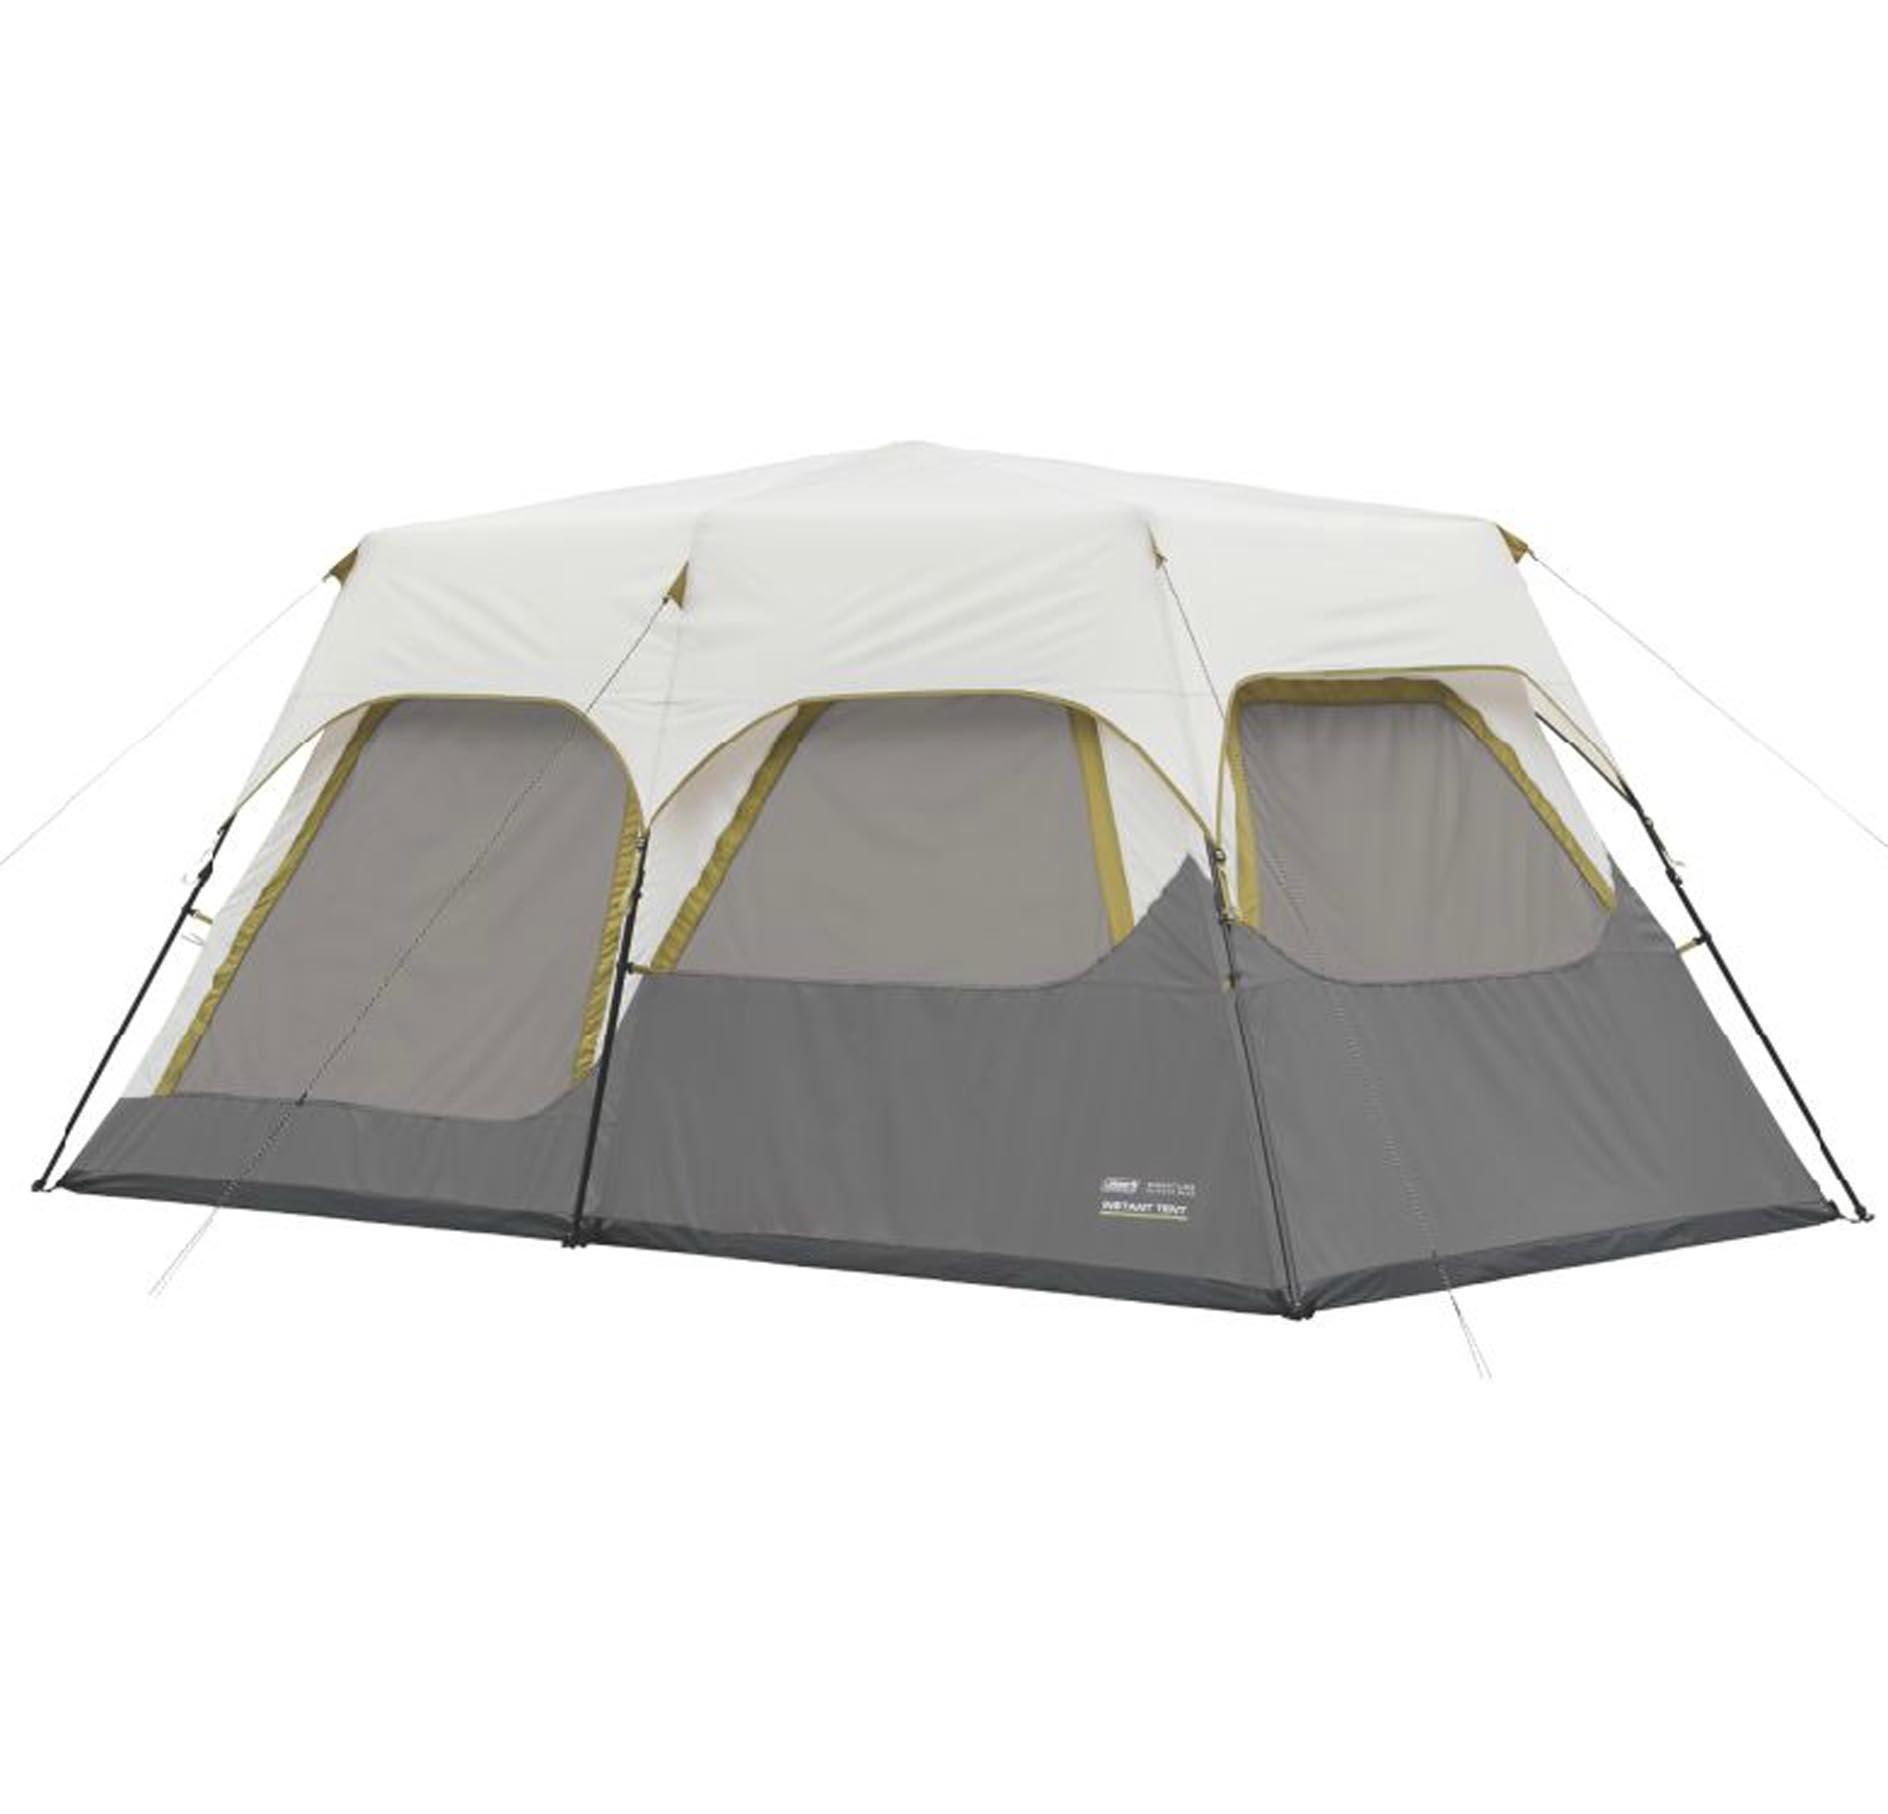 Coleman Instant Tent for 8 Person  sc 1 st  TOG.ae & Buy Coleman Instant Tent For 8 Person in Dubai at cheap price